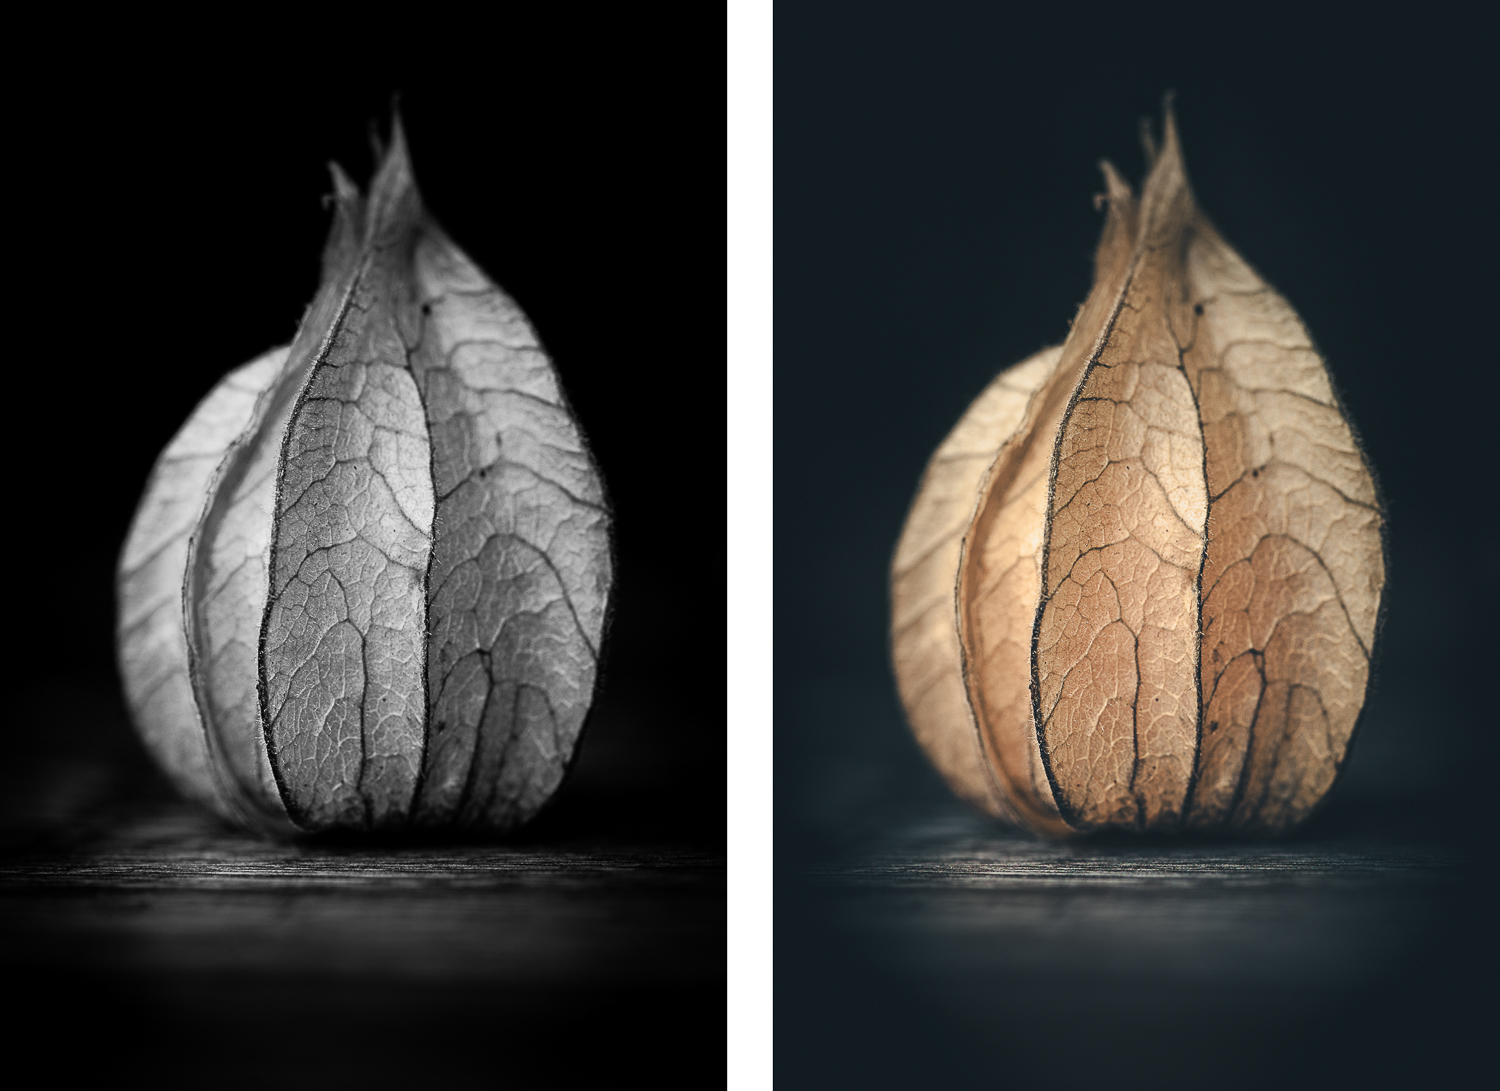 https://i0.wp.com/digital-photography-school.com/wp-content/uploads/2018/09/physalis_bw_colour.jpg?resize=1500%2C1091&ssl=1